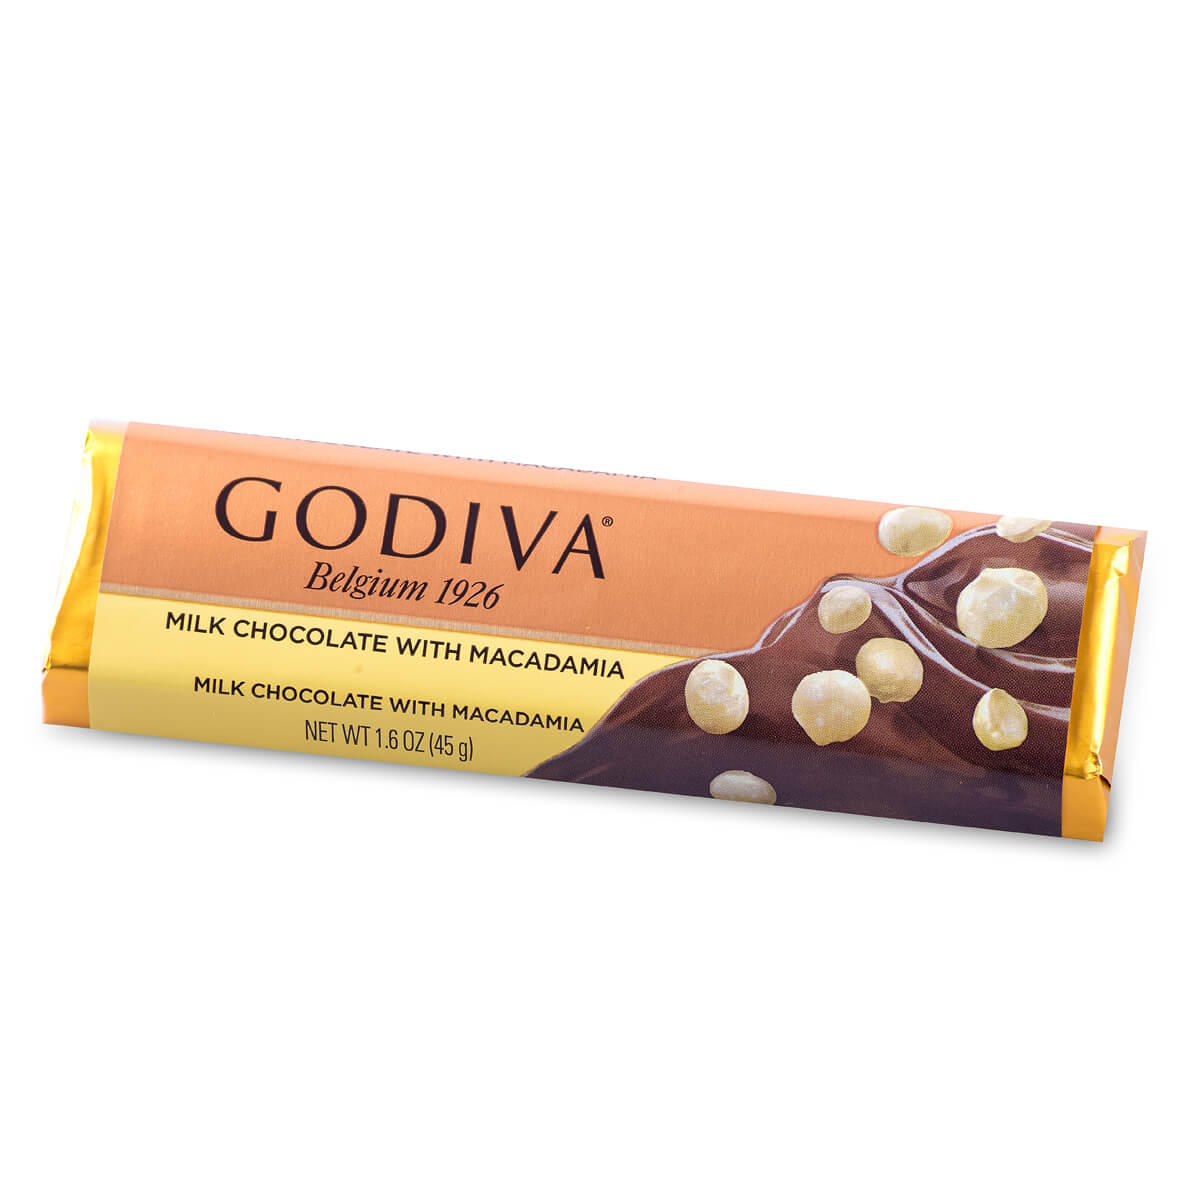 Godiva Say it with Chocolates - Delivery in Europe Others - Godiva